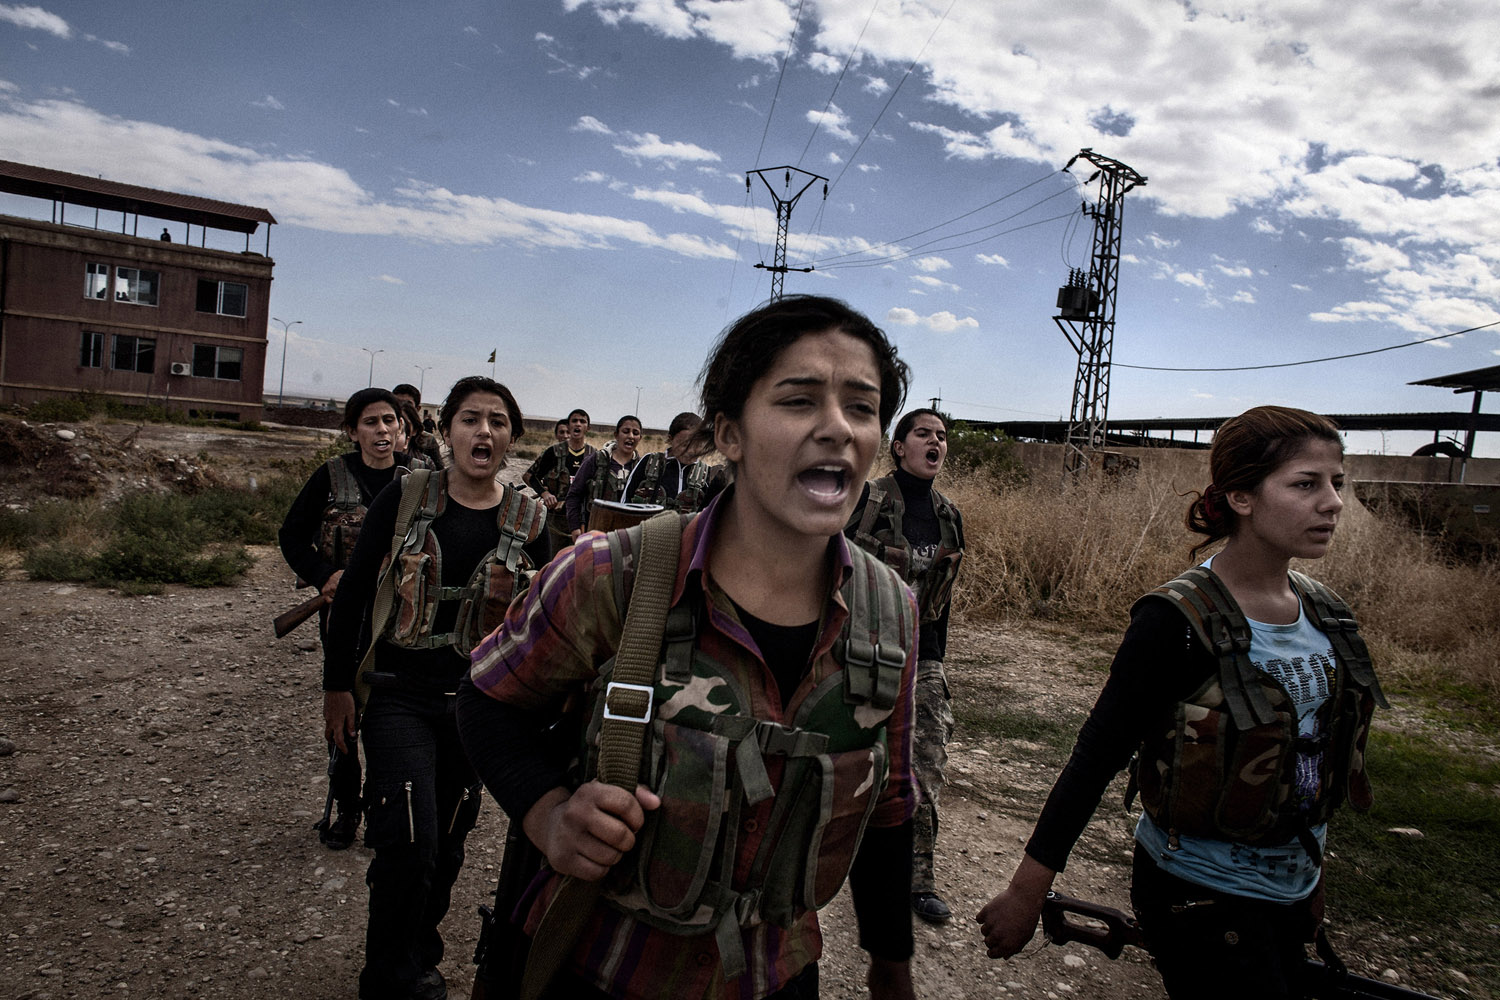 Young recruits during the training in the YPG camp near al-Malikiyah (Derik).